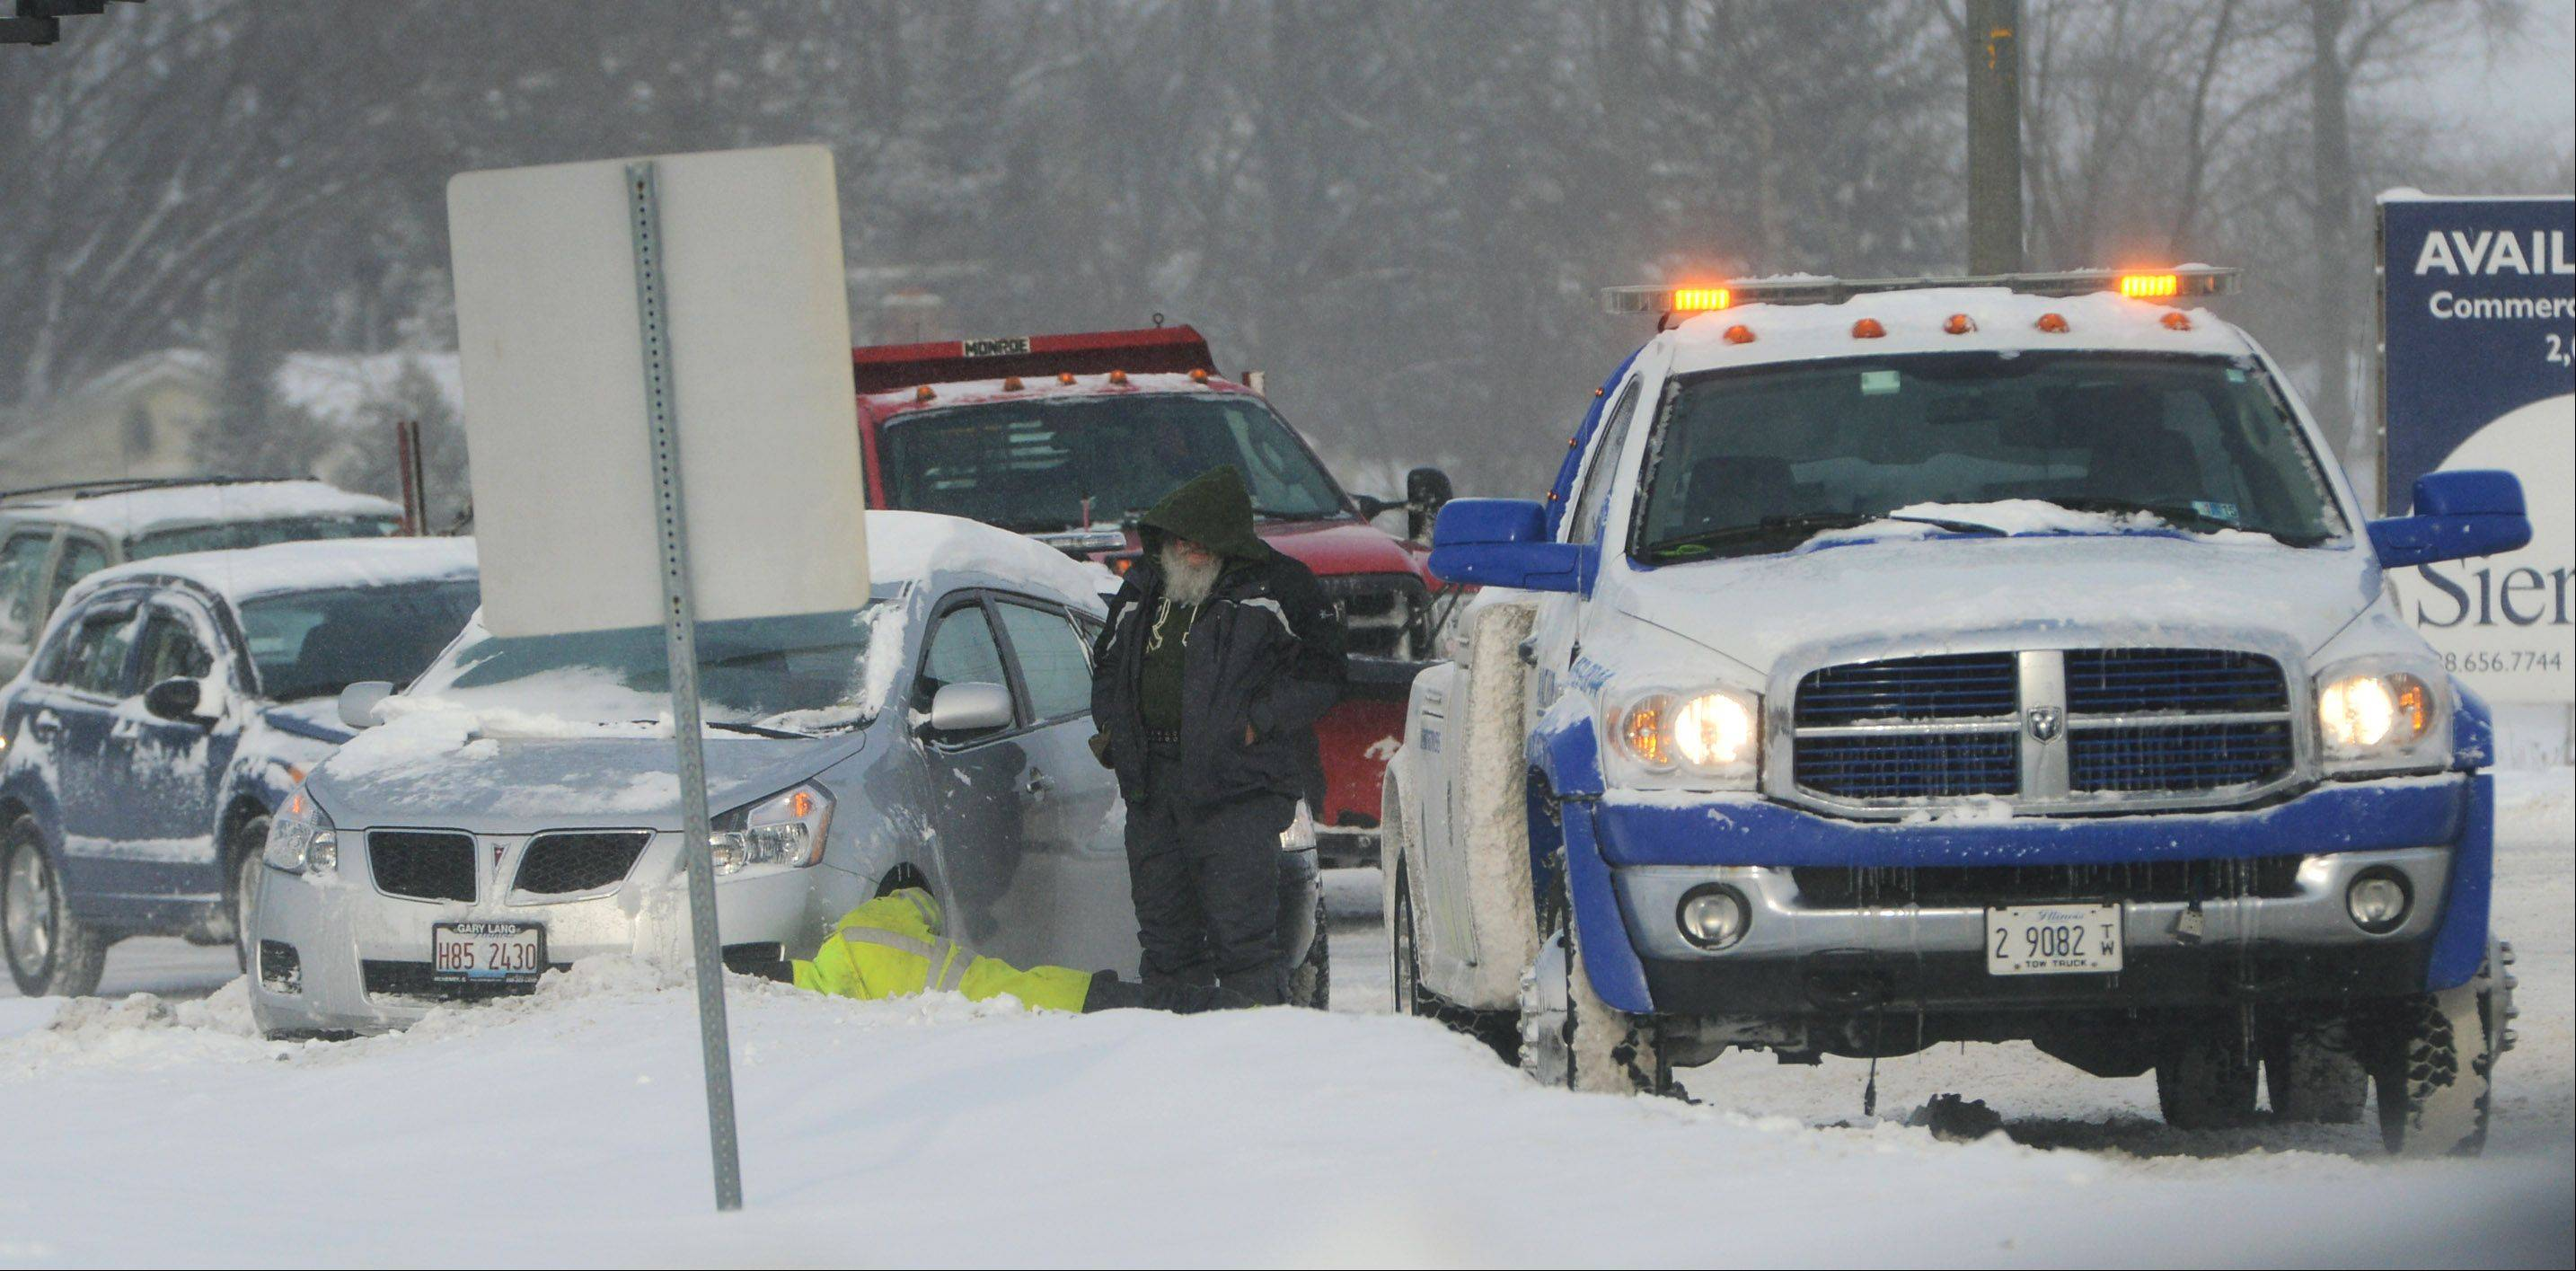 A driver waits to have his car pulled out from a snowbank along Route 176 in Island Lake. Wednesday morning's commute was hampered by overnight snowfall.